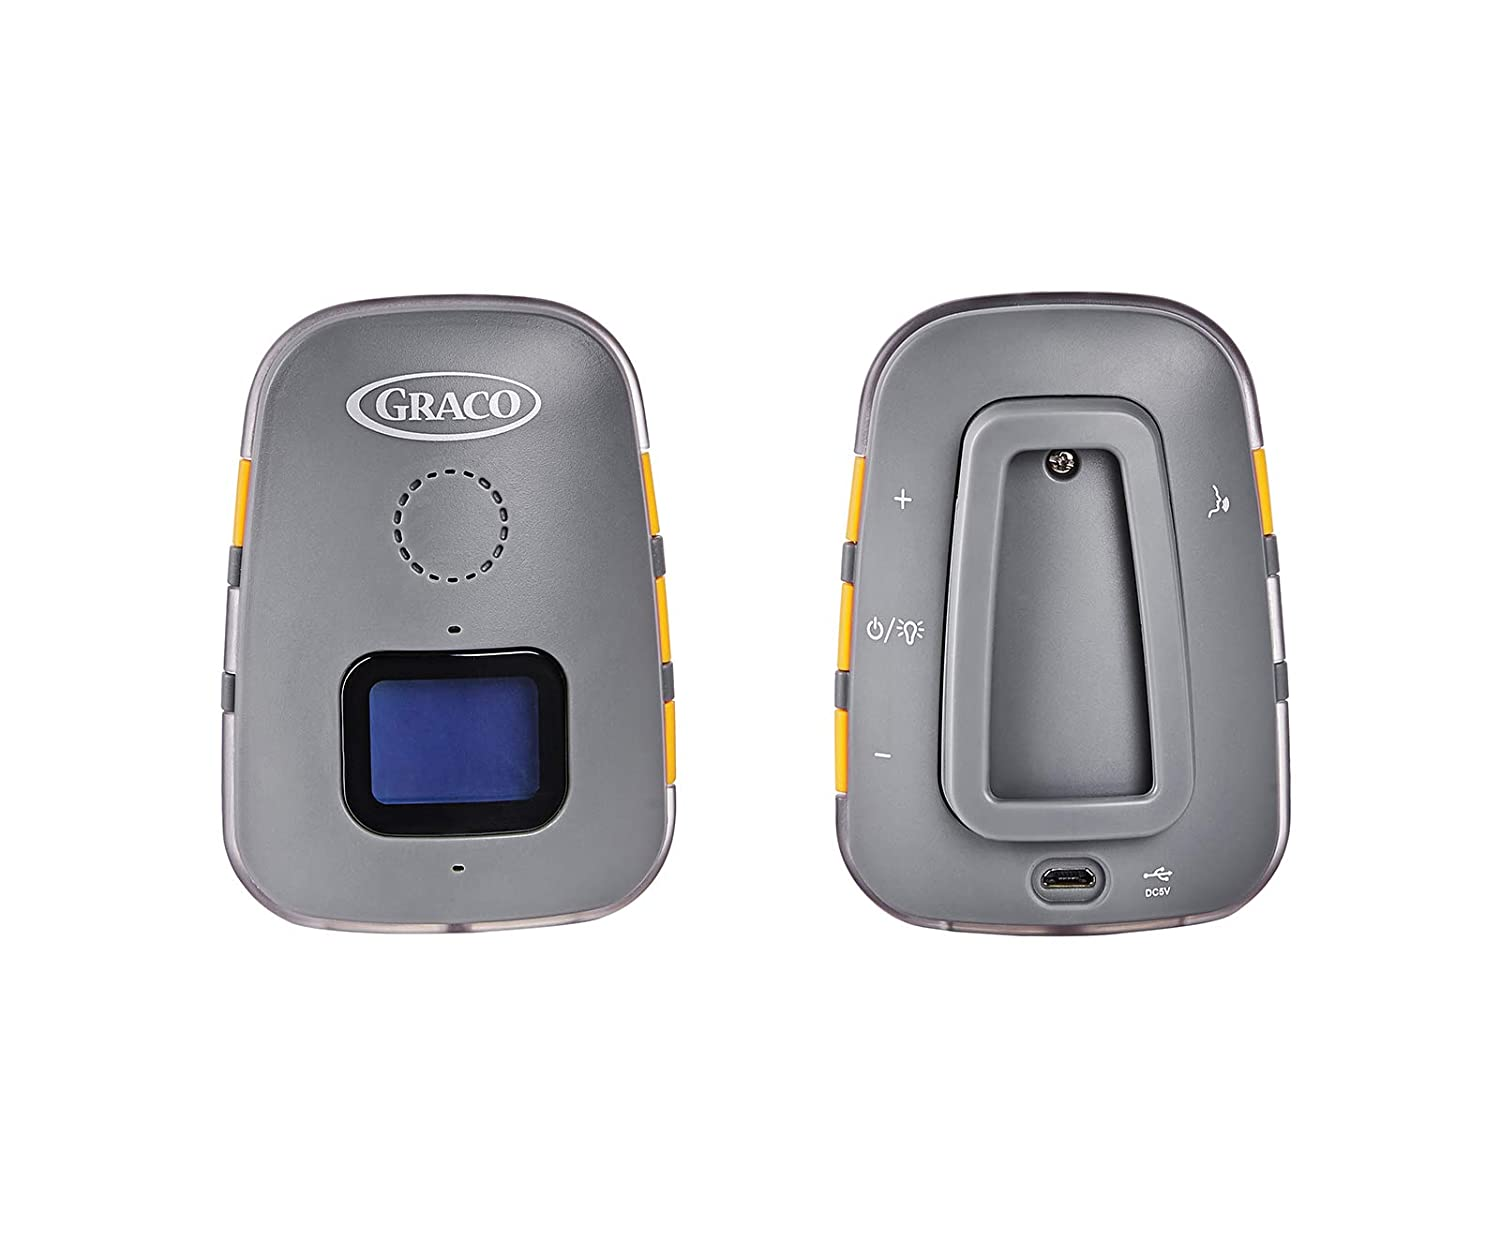 Graco Digital Baby All stores are sold Audio Monitor with unisex Long Wi Light Range Night